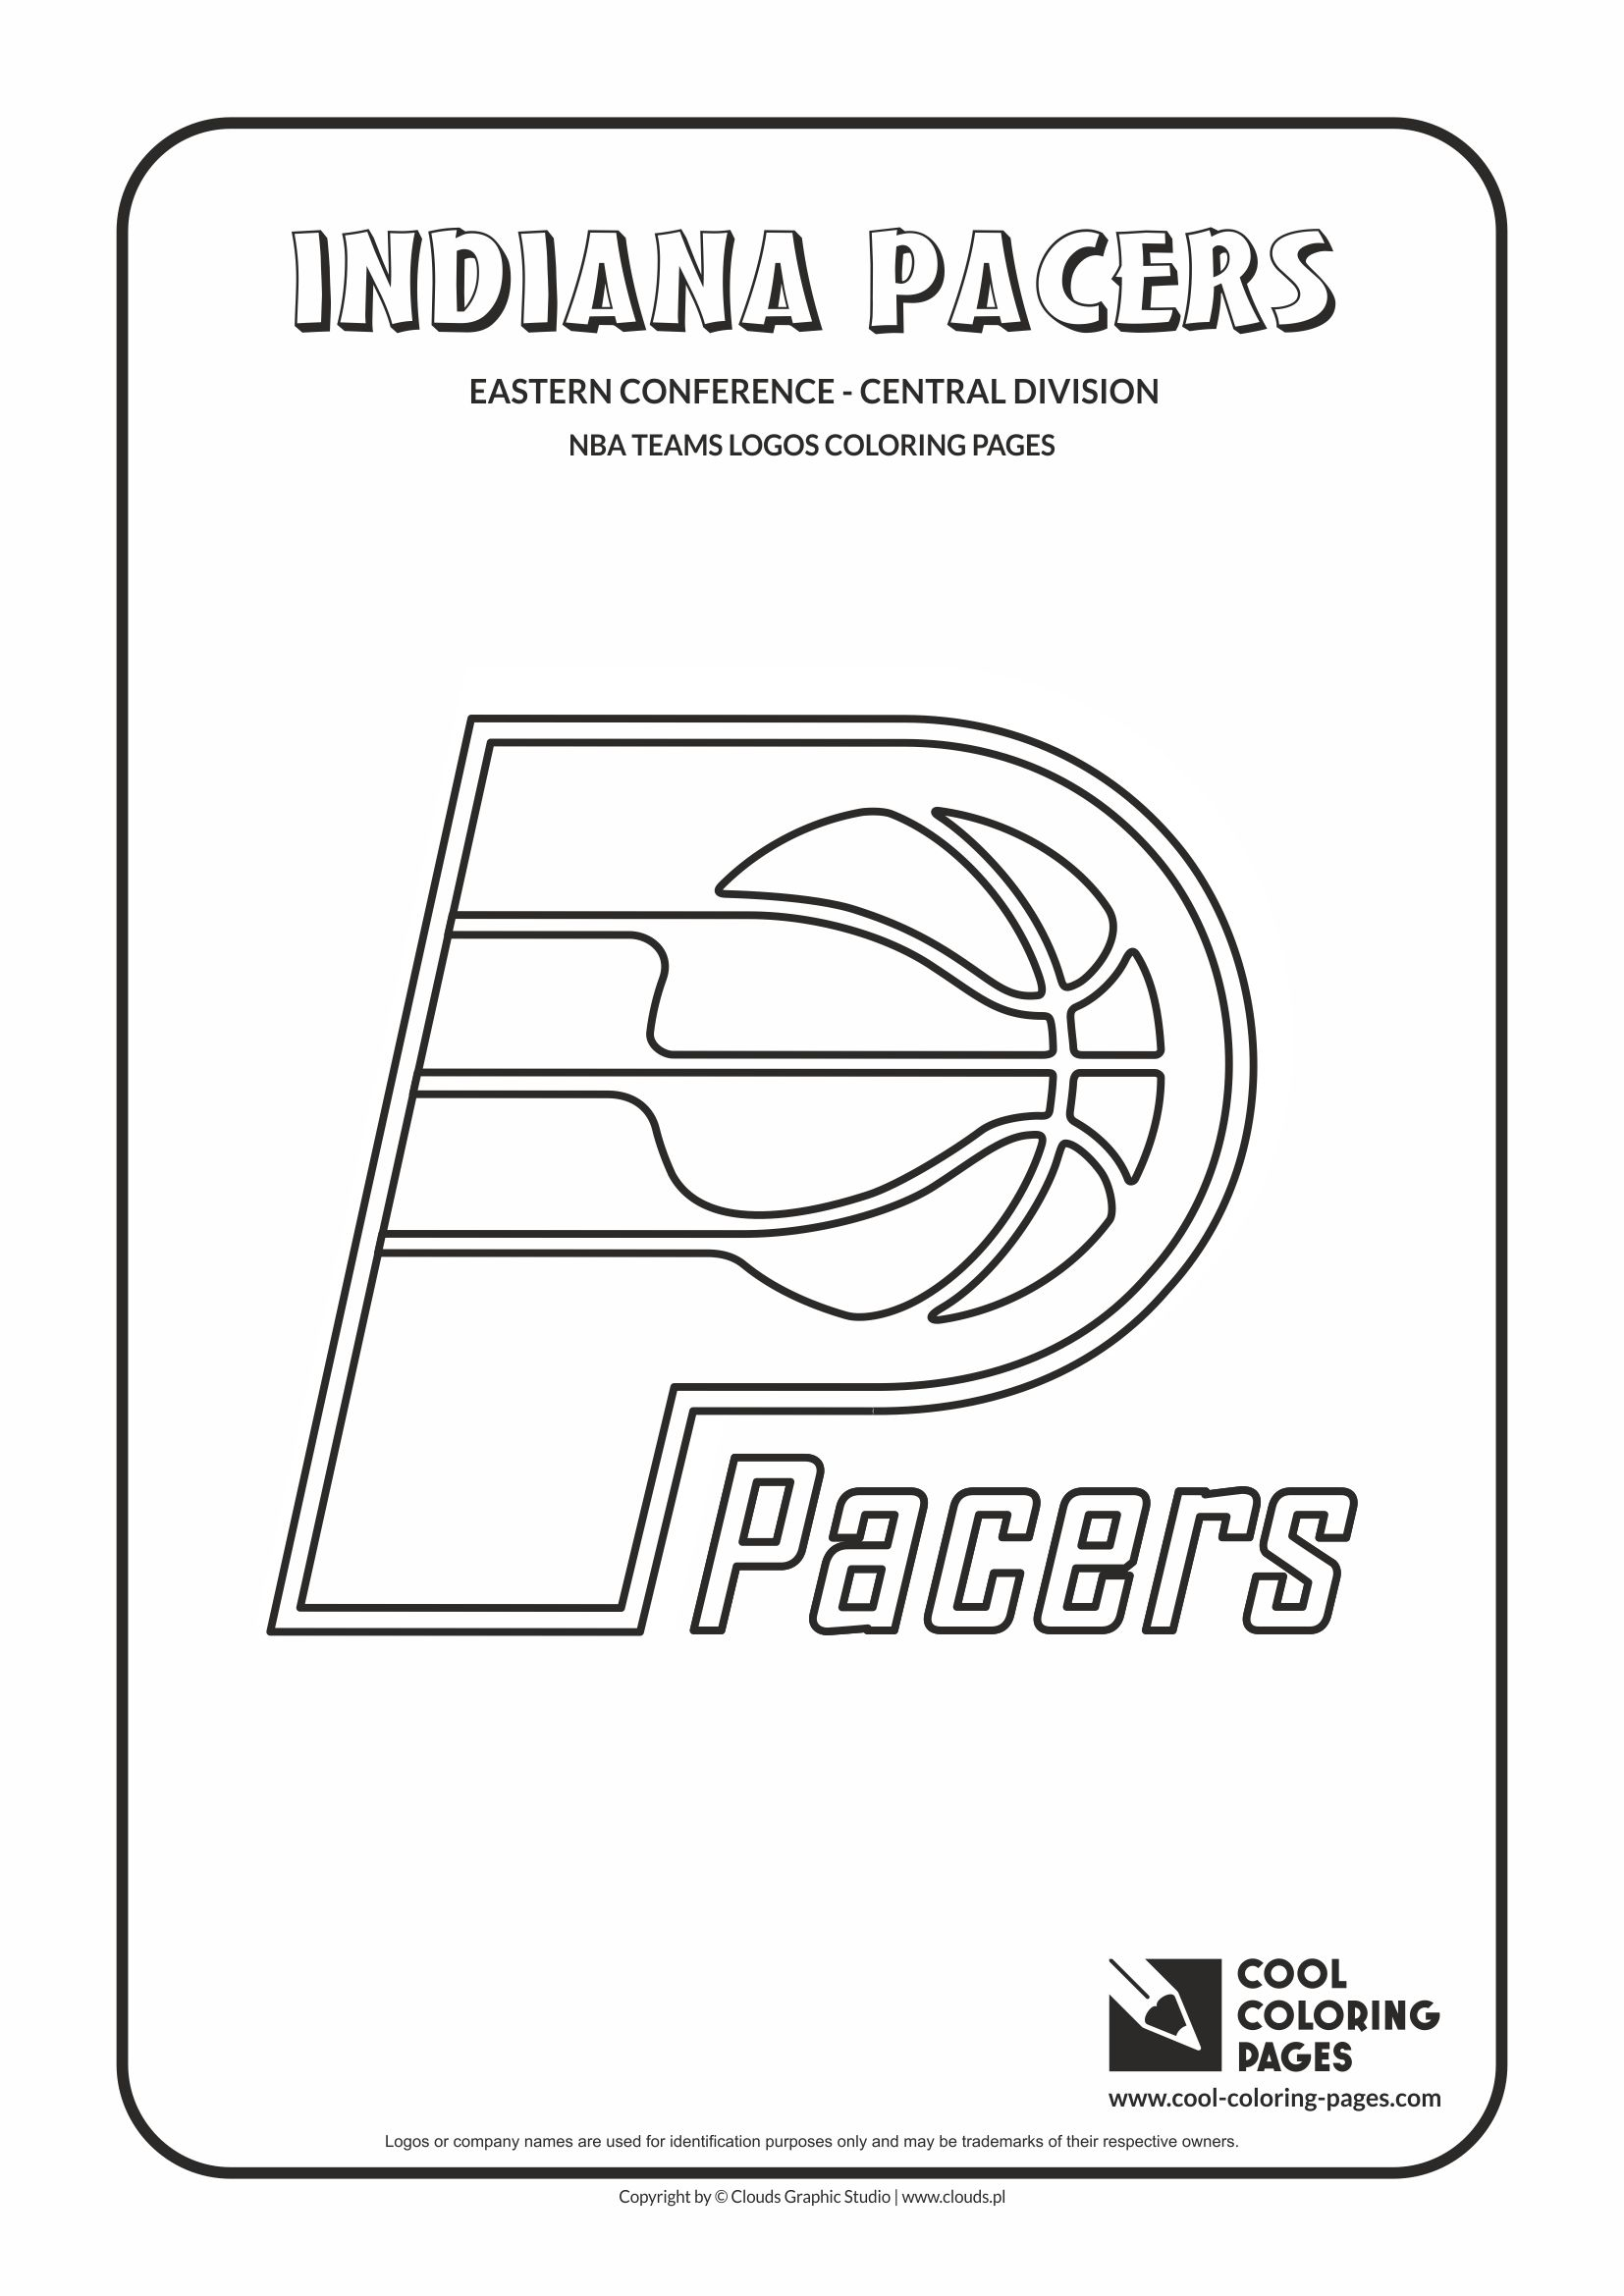 Cool Coloring Pages Indiana Pacers